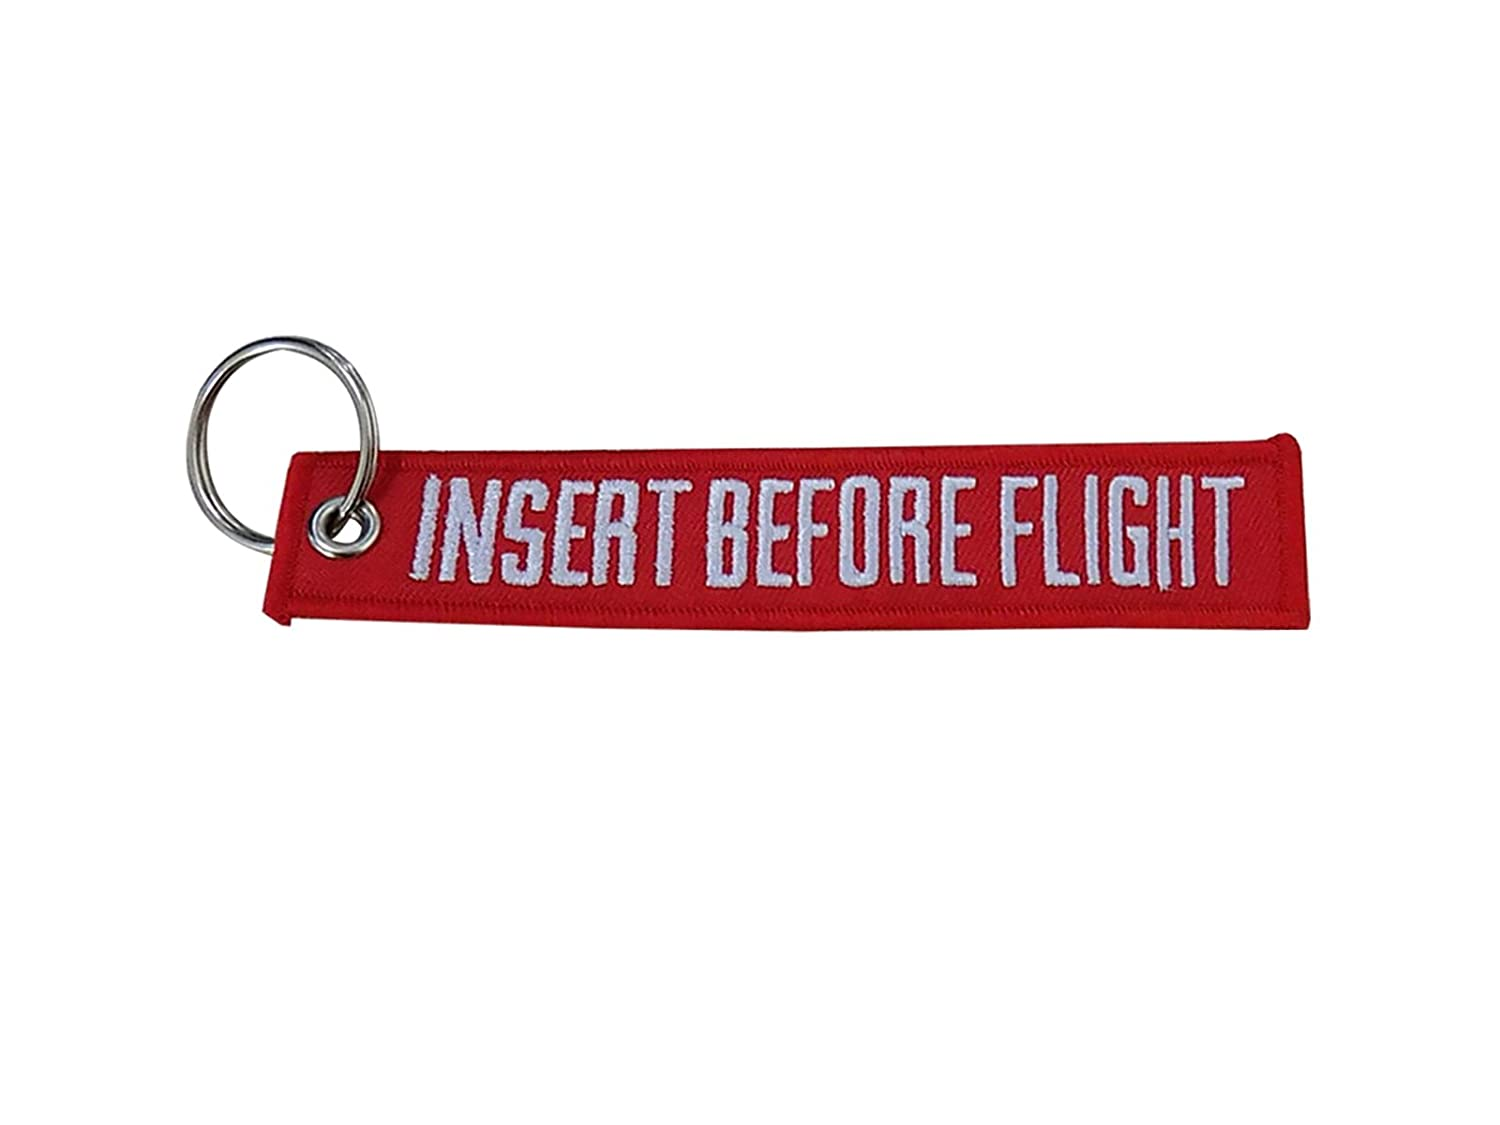 Keychain Embroidered Key Chain for Motorcycles Scooters Cars and Gifts Sportbike Bags Backbags INSERT BEFORE FLIGHT (RED) YJS